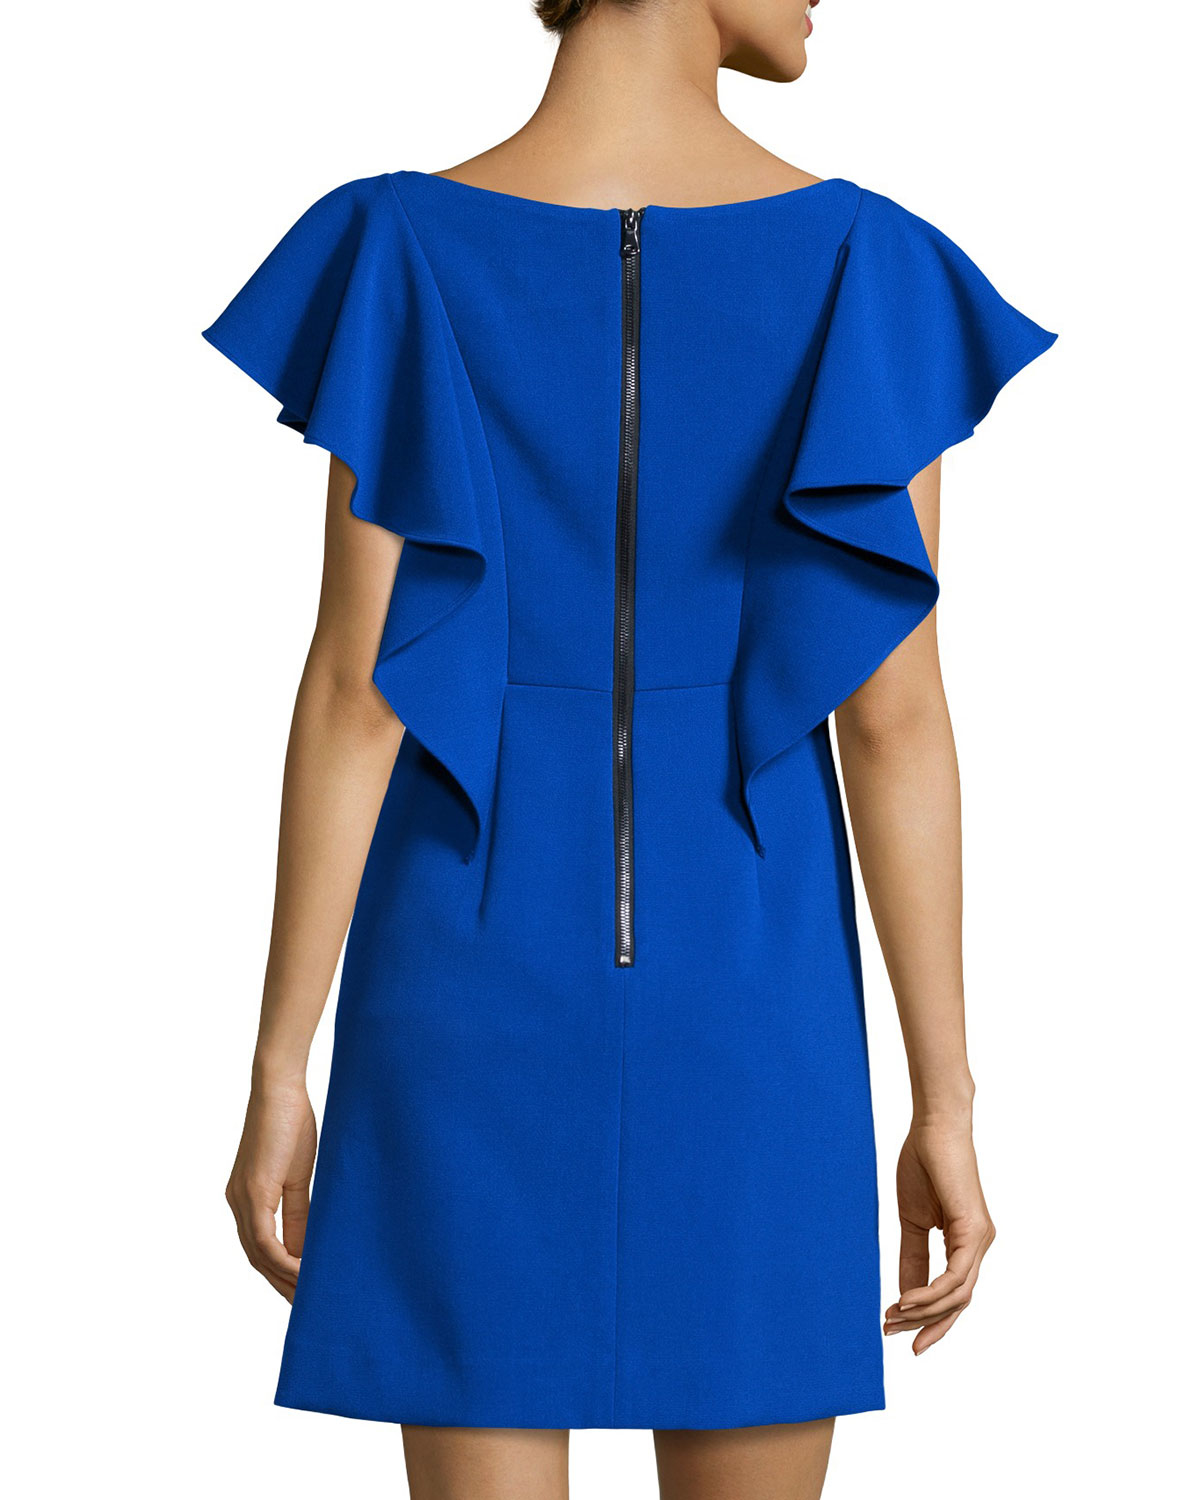 Cheap Fake Popular Milly ruffled sleeves dress Clearance Footaction Outlet Pre Order Shopping Online High Quality 05L2Bul